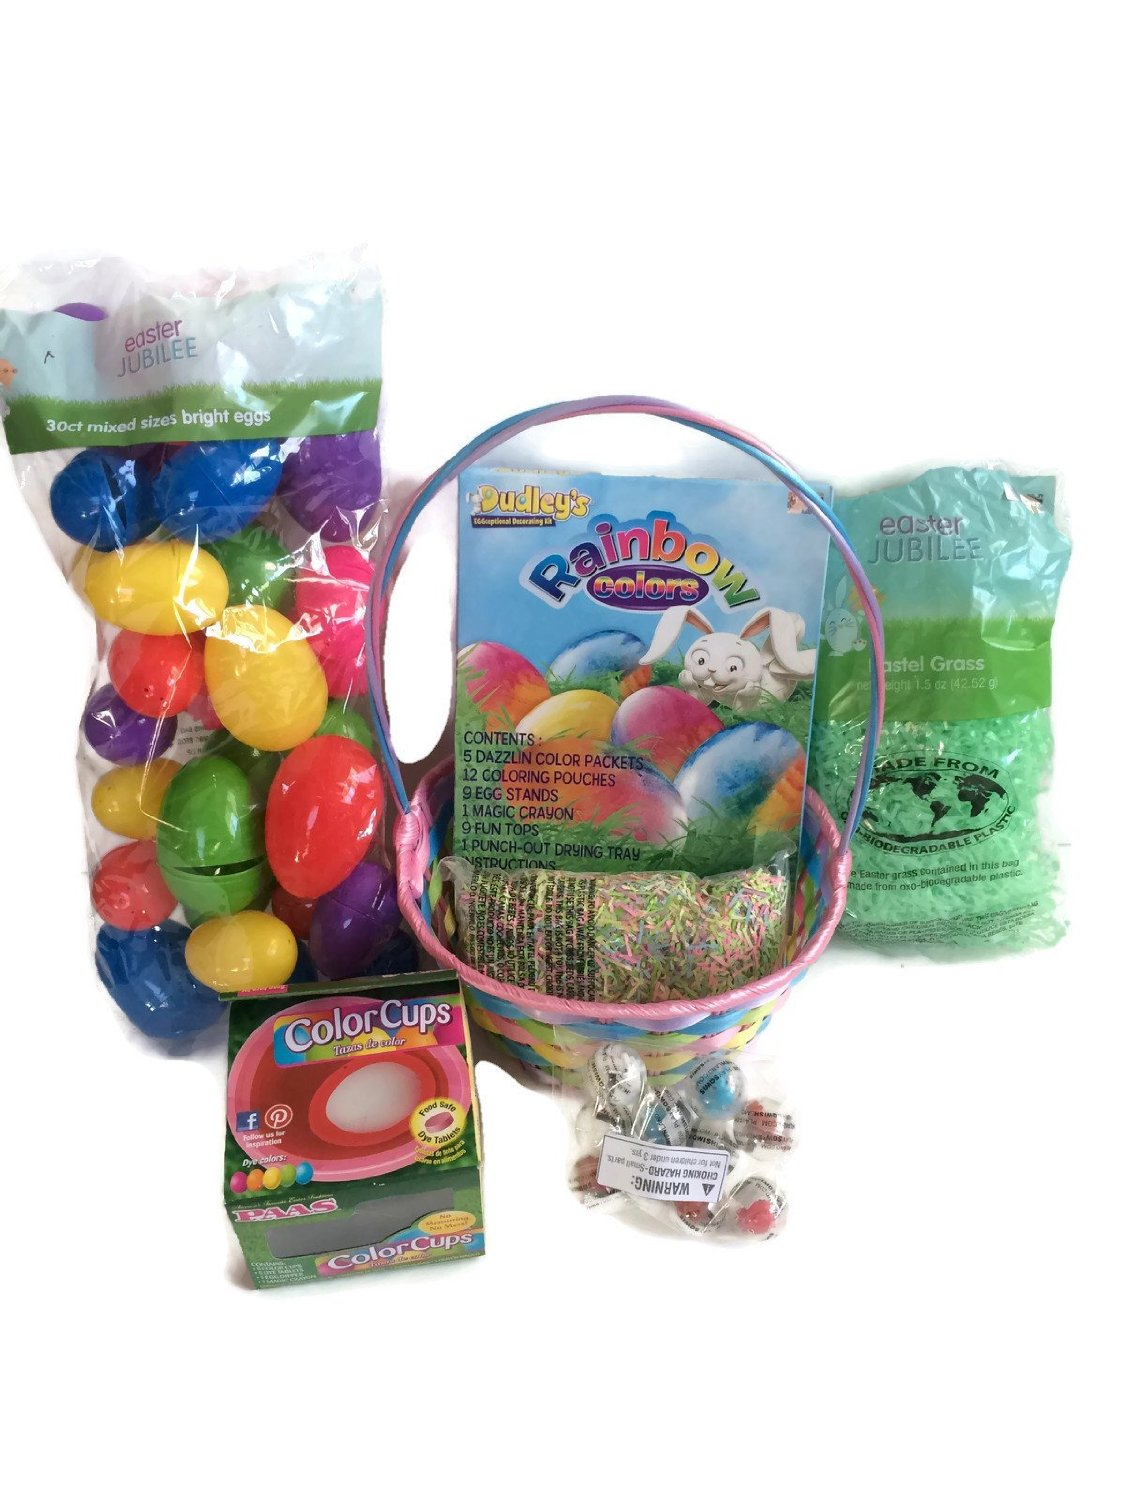 Easter Basket Egg Hunt & Egg Dye Bundle: 7 Items: Easter Basket, Easter Grass, Confetti, Rainbow Egg Dye Kit, Easter Eggs, Color Cups, Plus Filler Toys